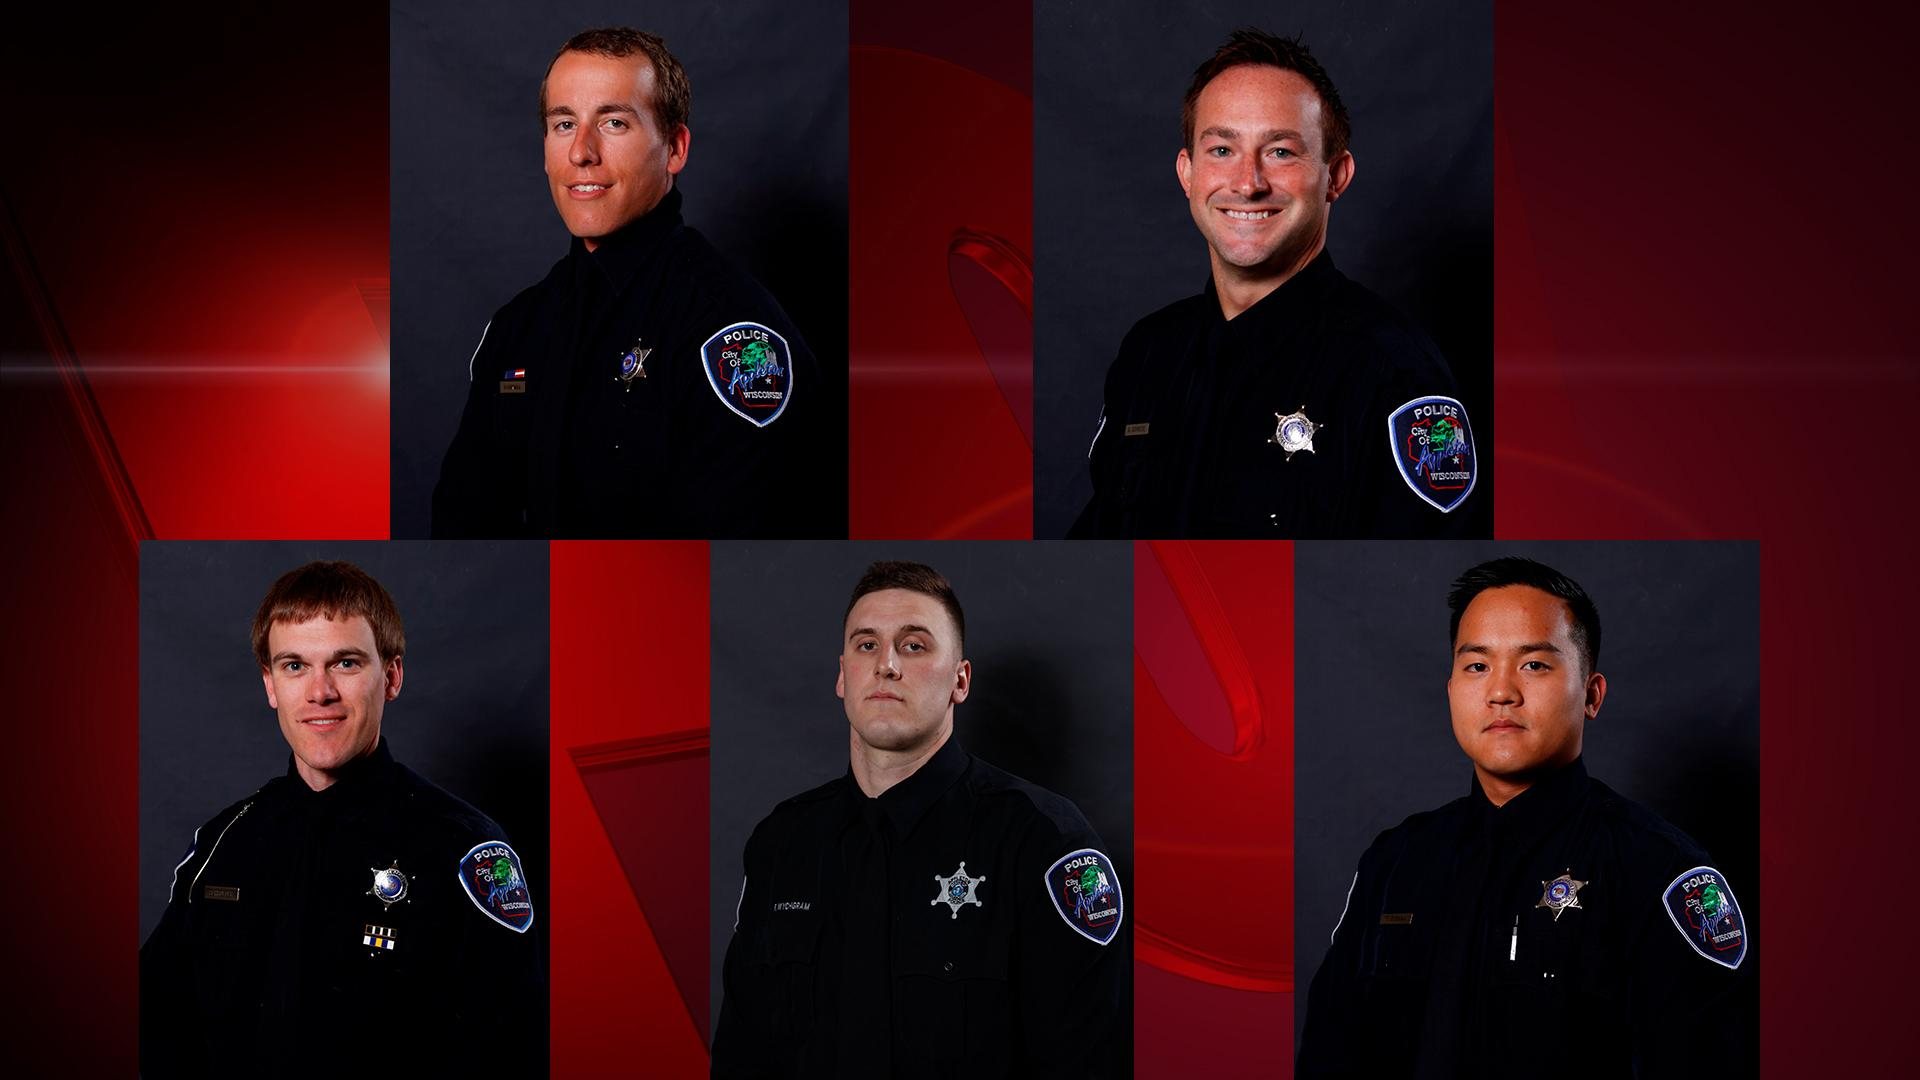 Top row, L-R, Nathan Hoffman and Brandon Schnese. Bottom row, L-R, Ryan Schroeder, Frank Wychgram and Thomas Zieman. (Photos courtesy of Appleton Police Department)